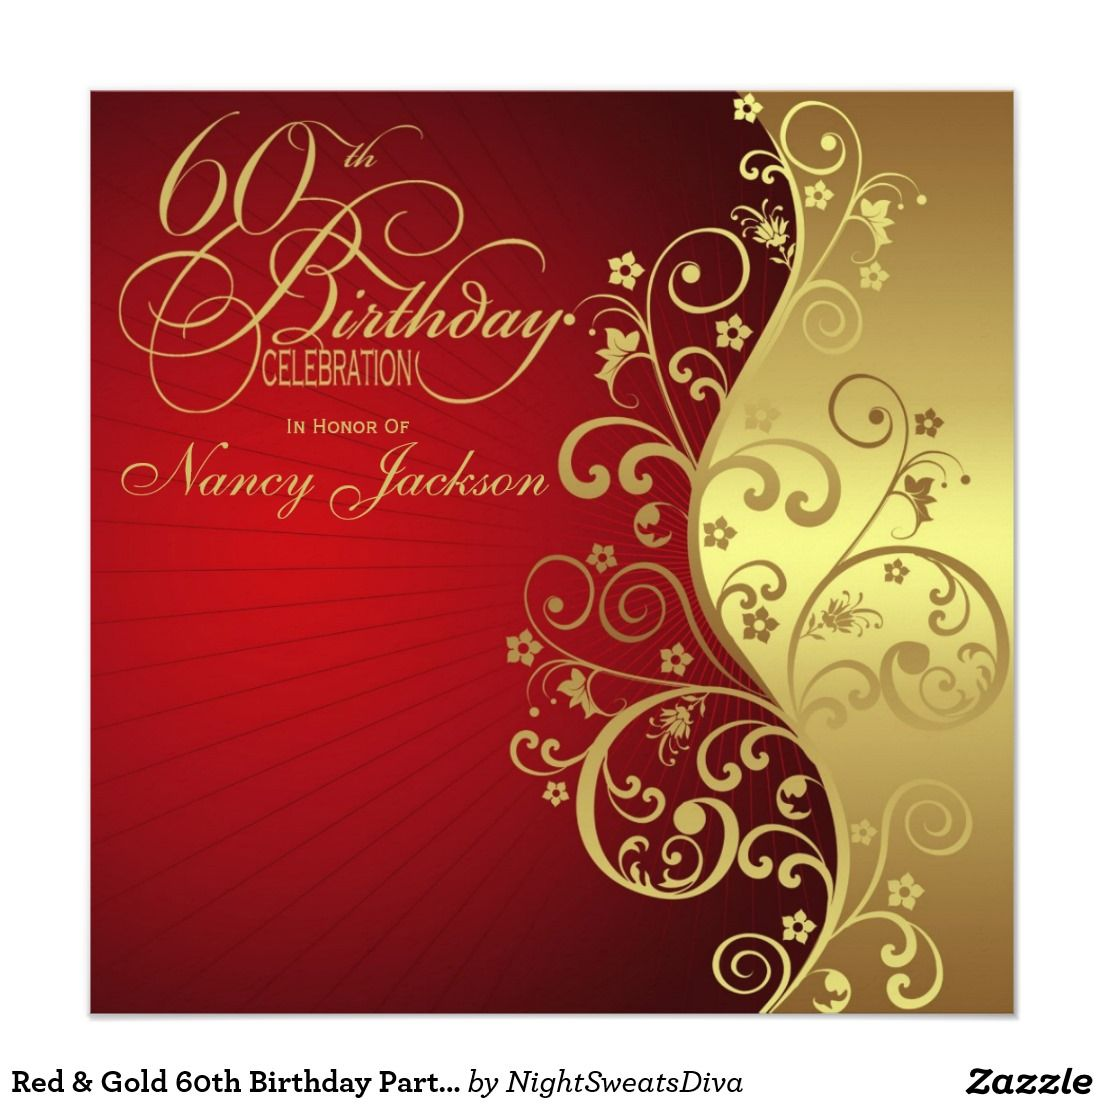 Red gold 60th birthday party invitation invitations pinterest red gold 60th birthday party invitation filmwisefo Choice Image